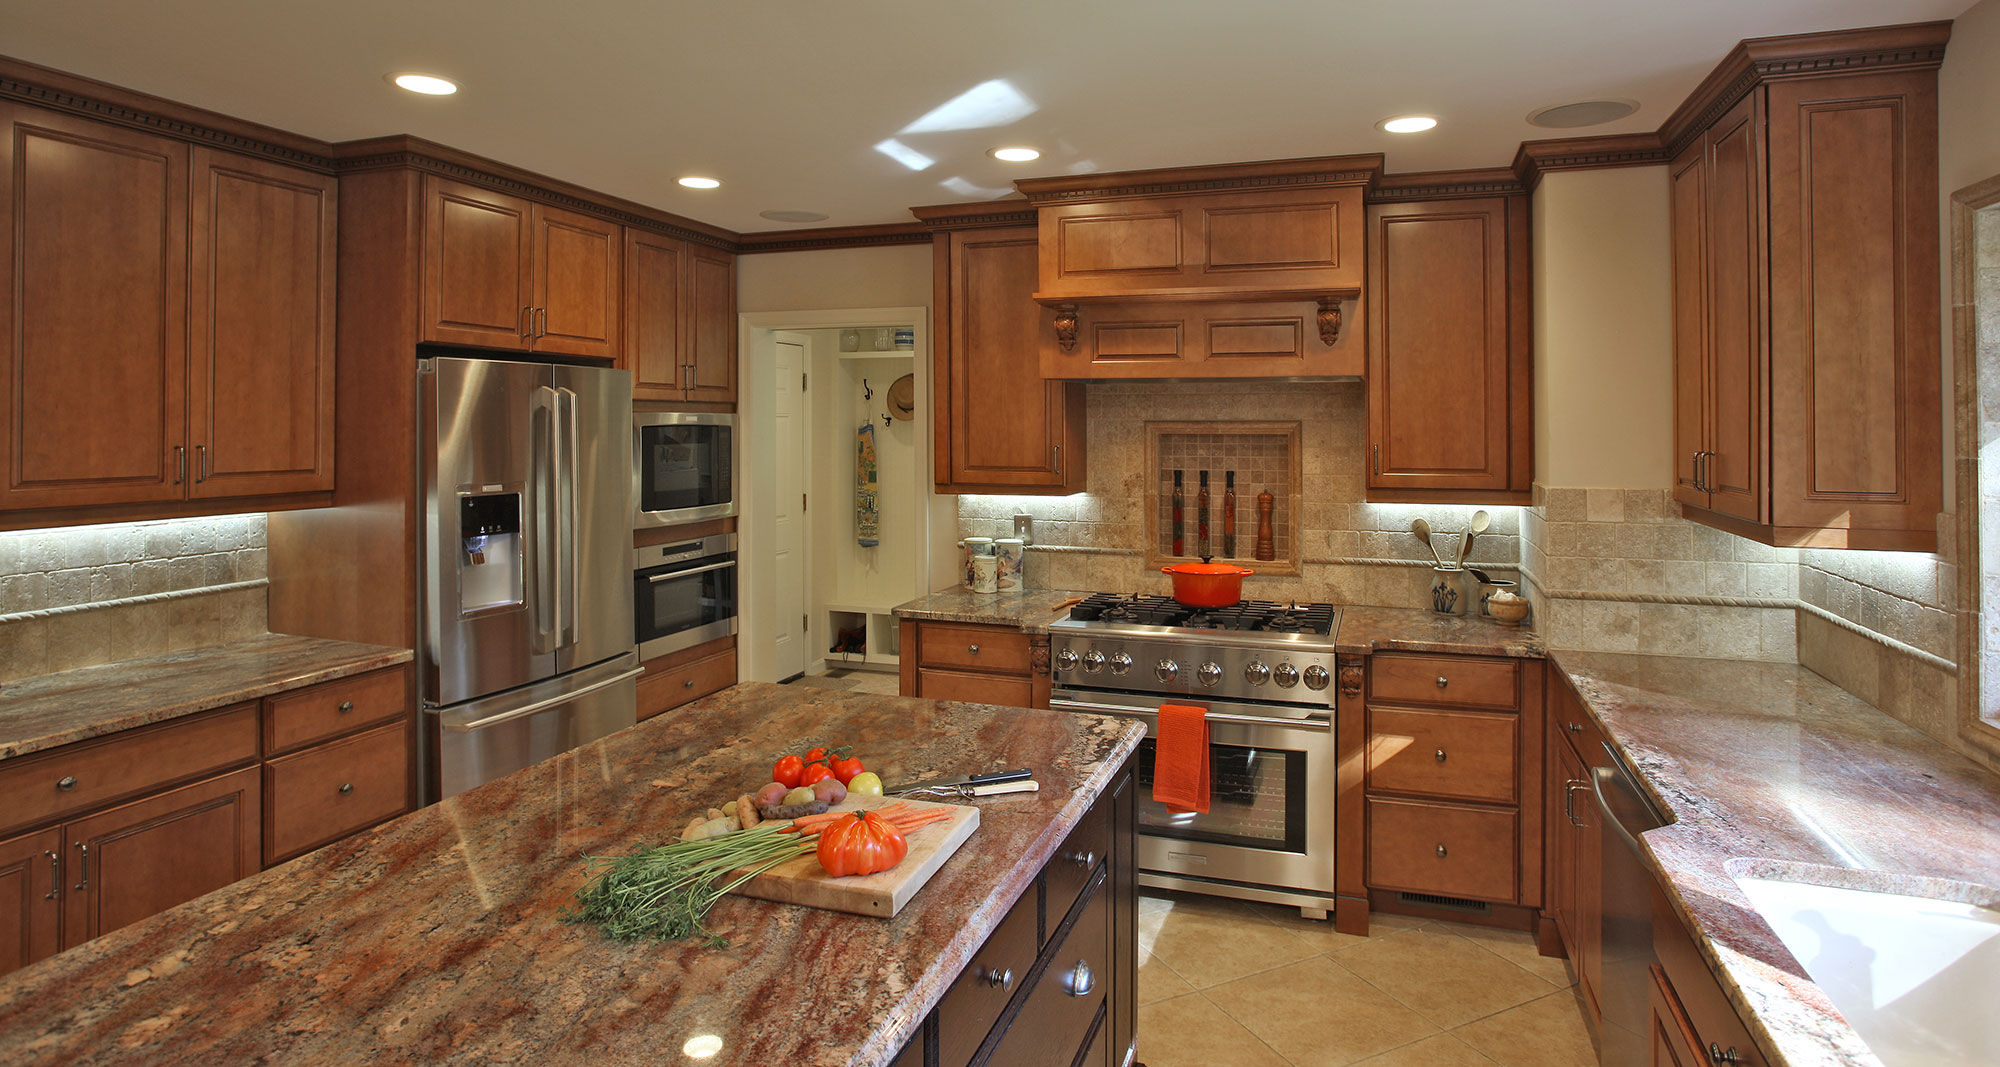 Kitchen Remodeling Maryland Creative Remodelling Impressive Kitchen And Bath Remodeling Serving Northern Virginia Maryland . Design Decoration